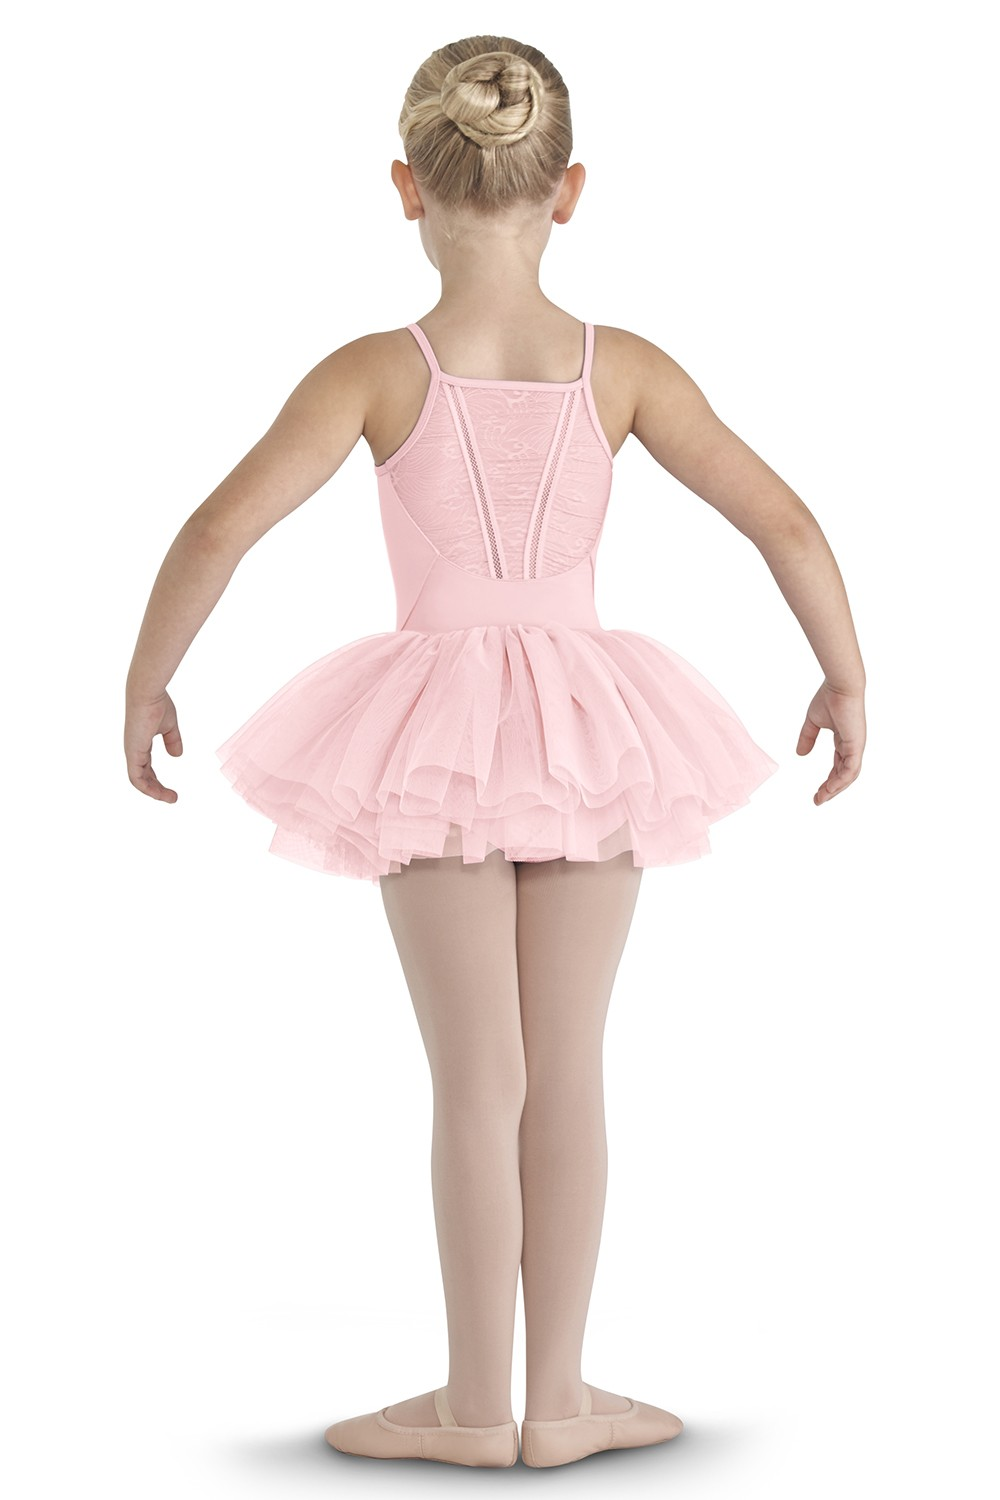 Sona Children's Dance Leotards